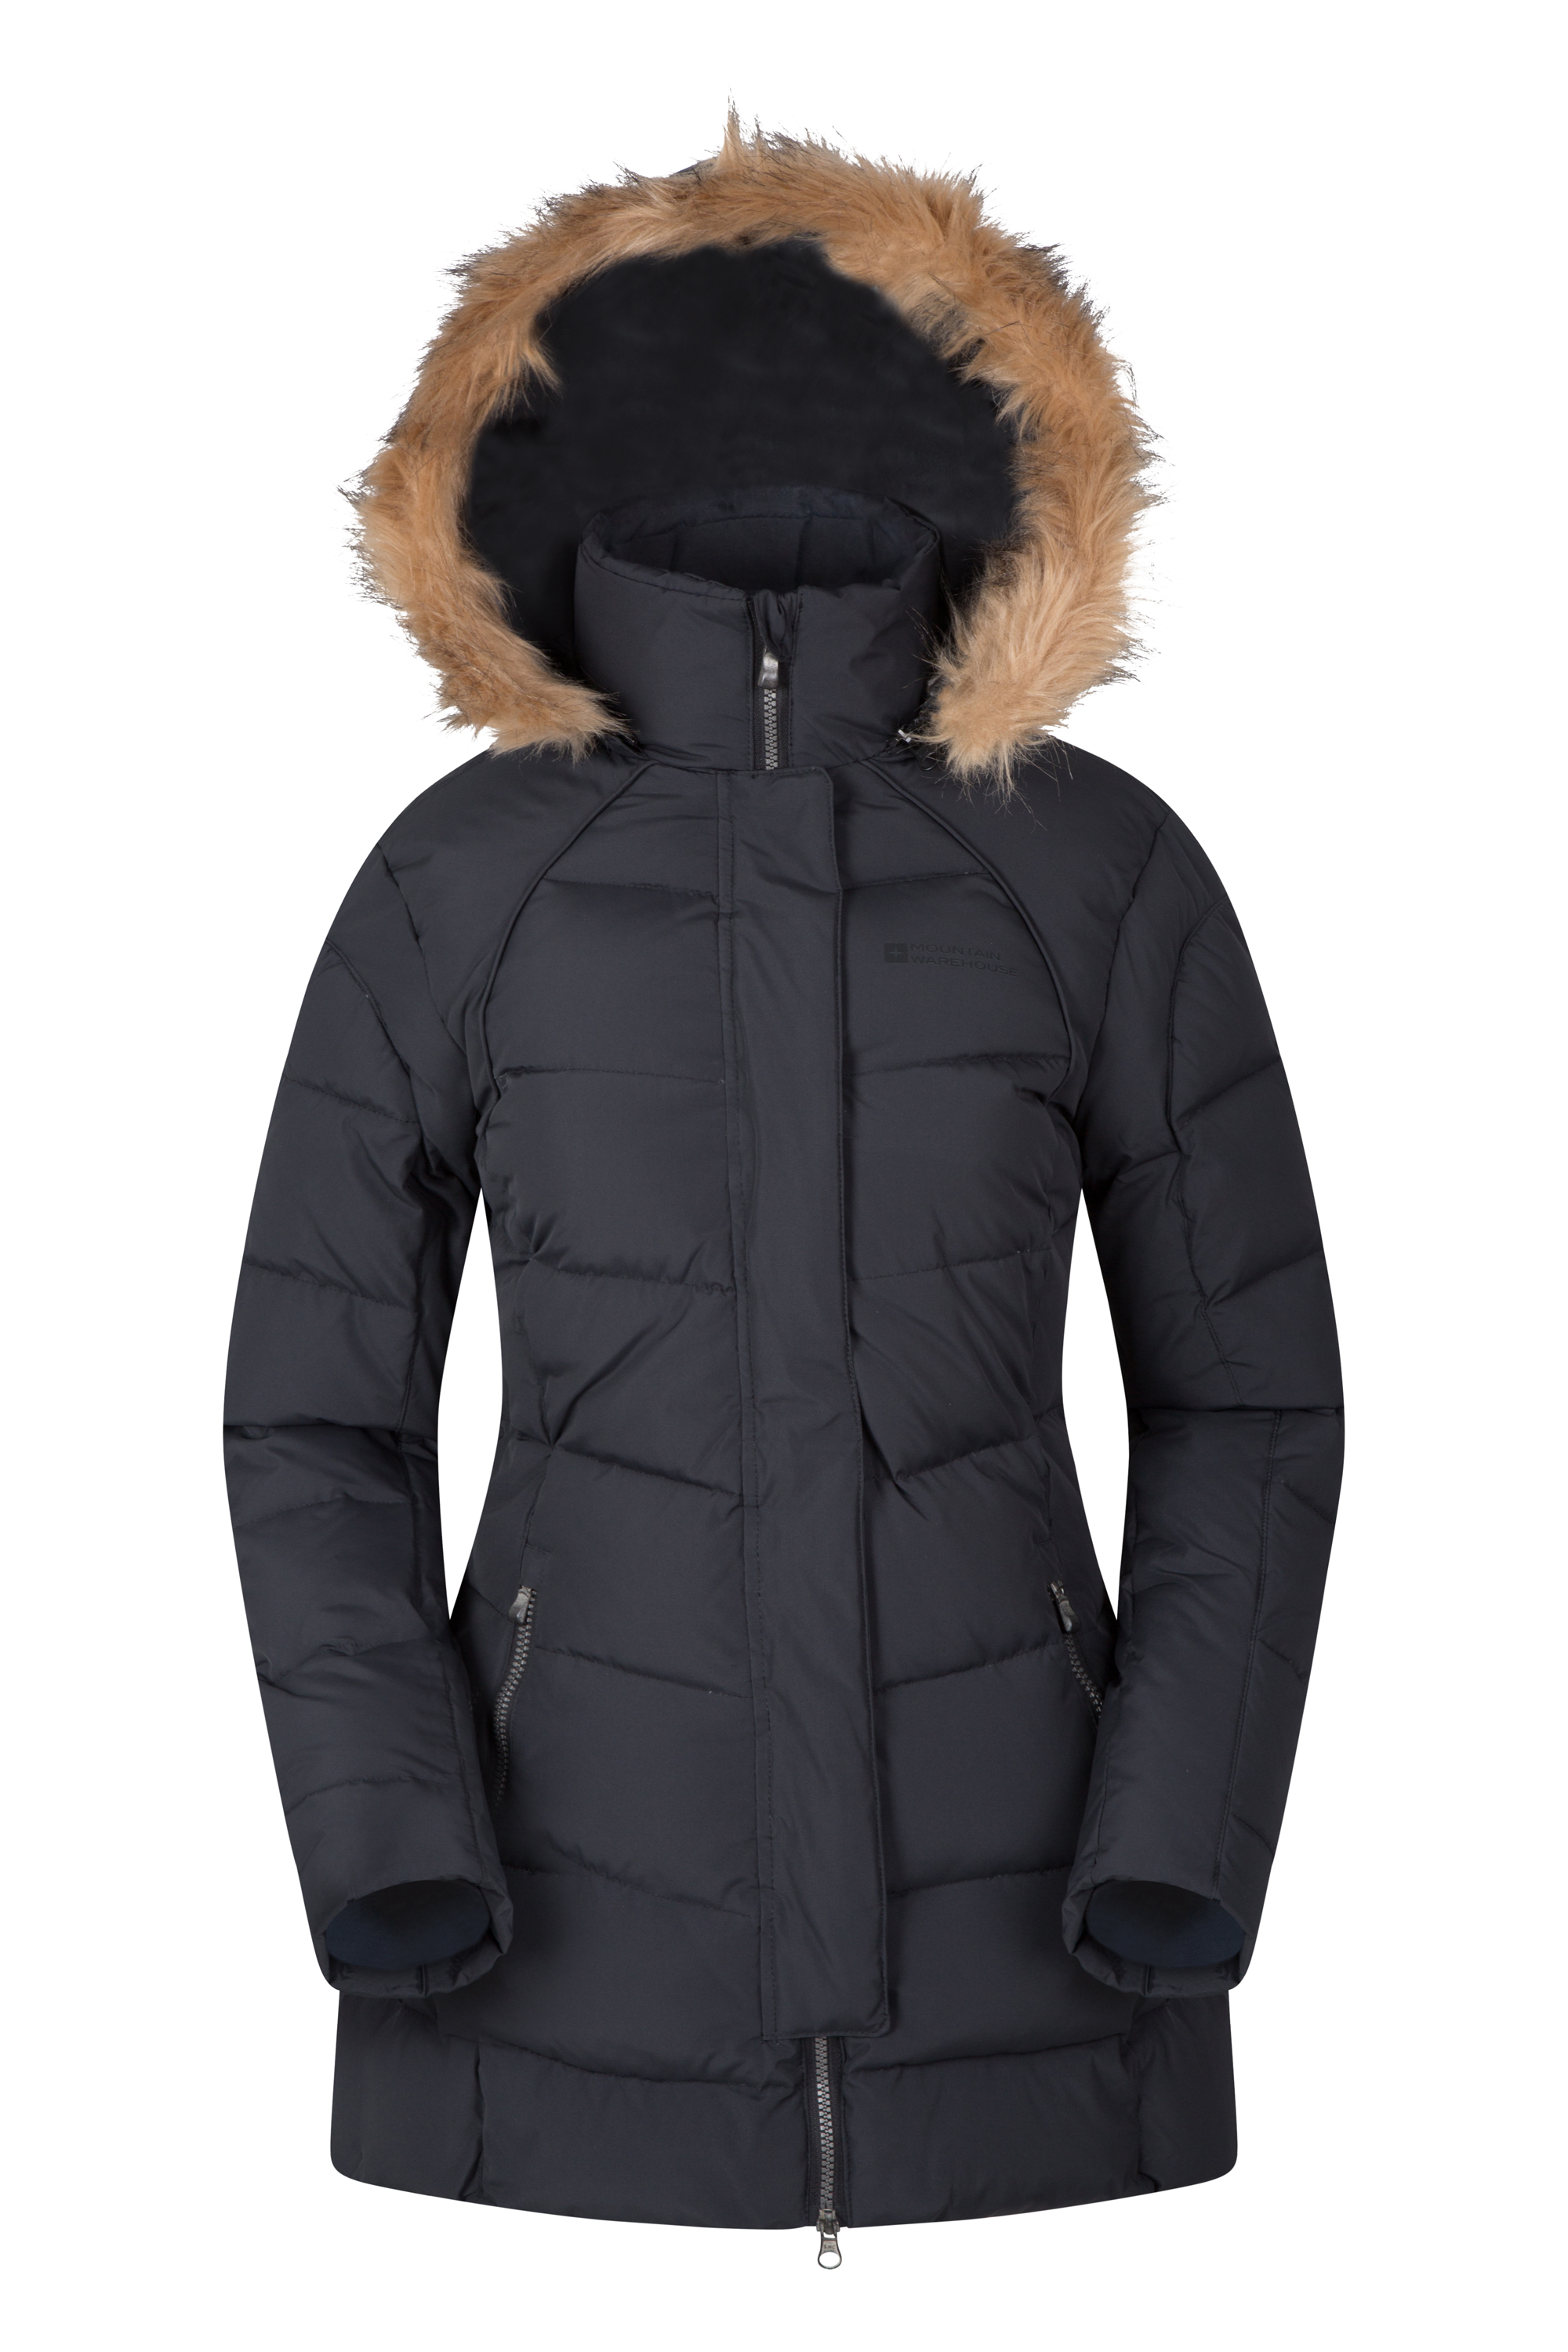 2019 Fashion Men Winter Down Jackets Luxury Brand Clothing